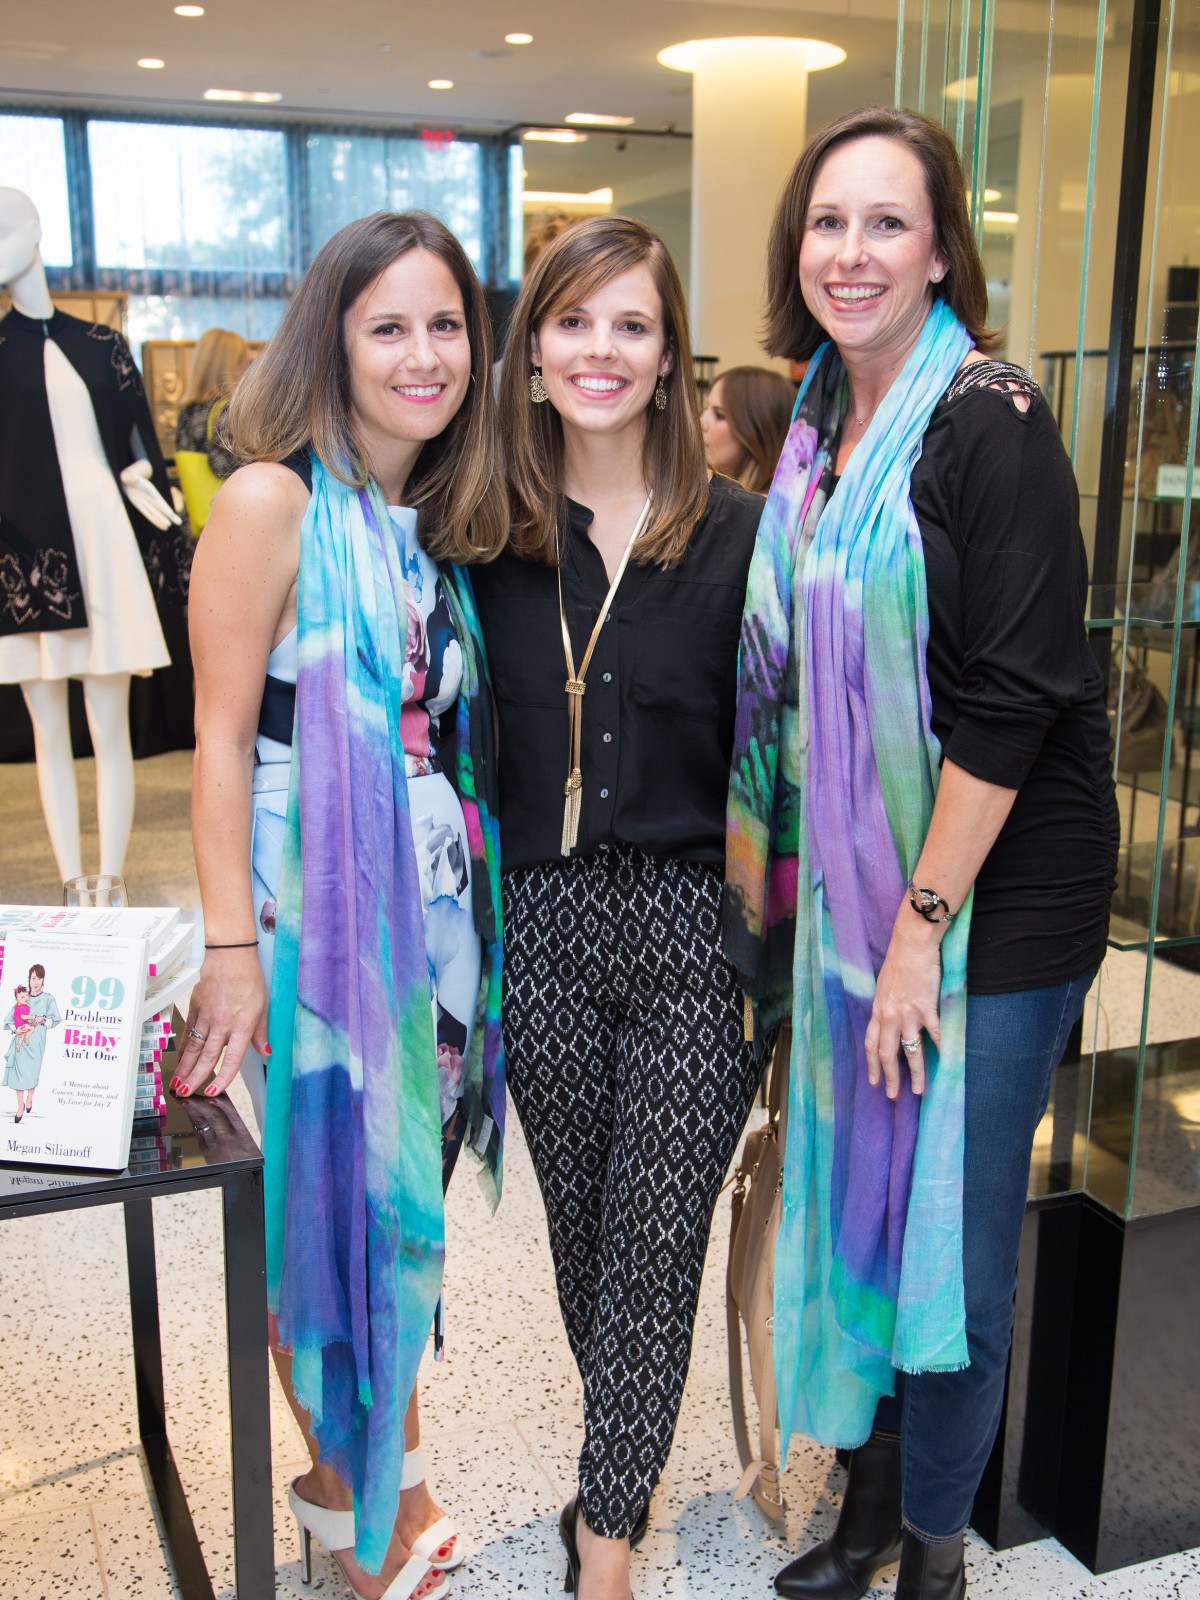 News, Shelby, Ovarian Cancer Awareness Month. tootsies, Sept. 2015, Megan Silanoff, Morgan Hotzel, Aimee Friend